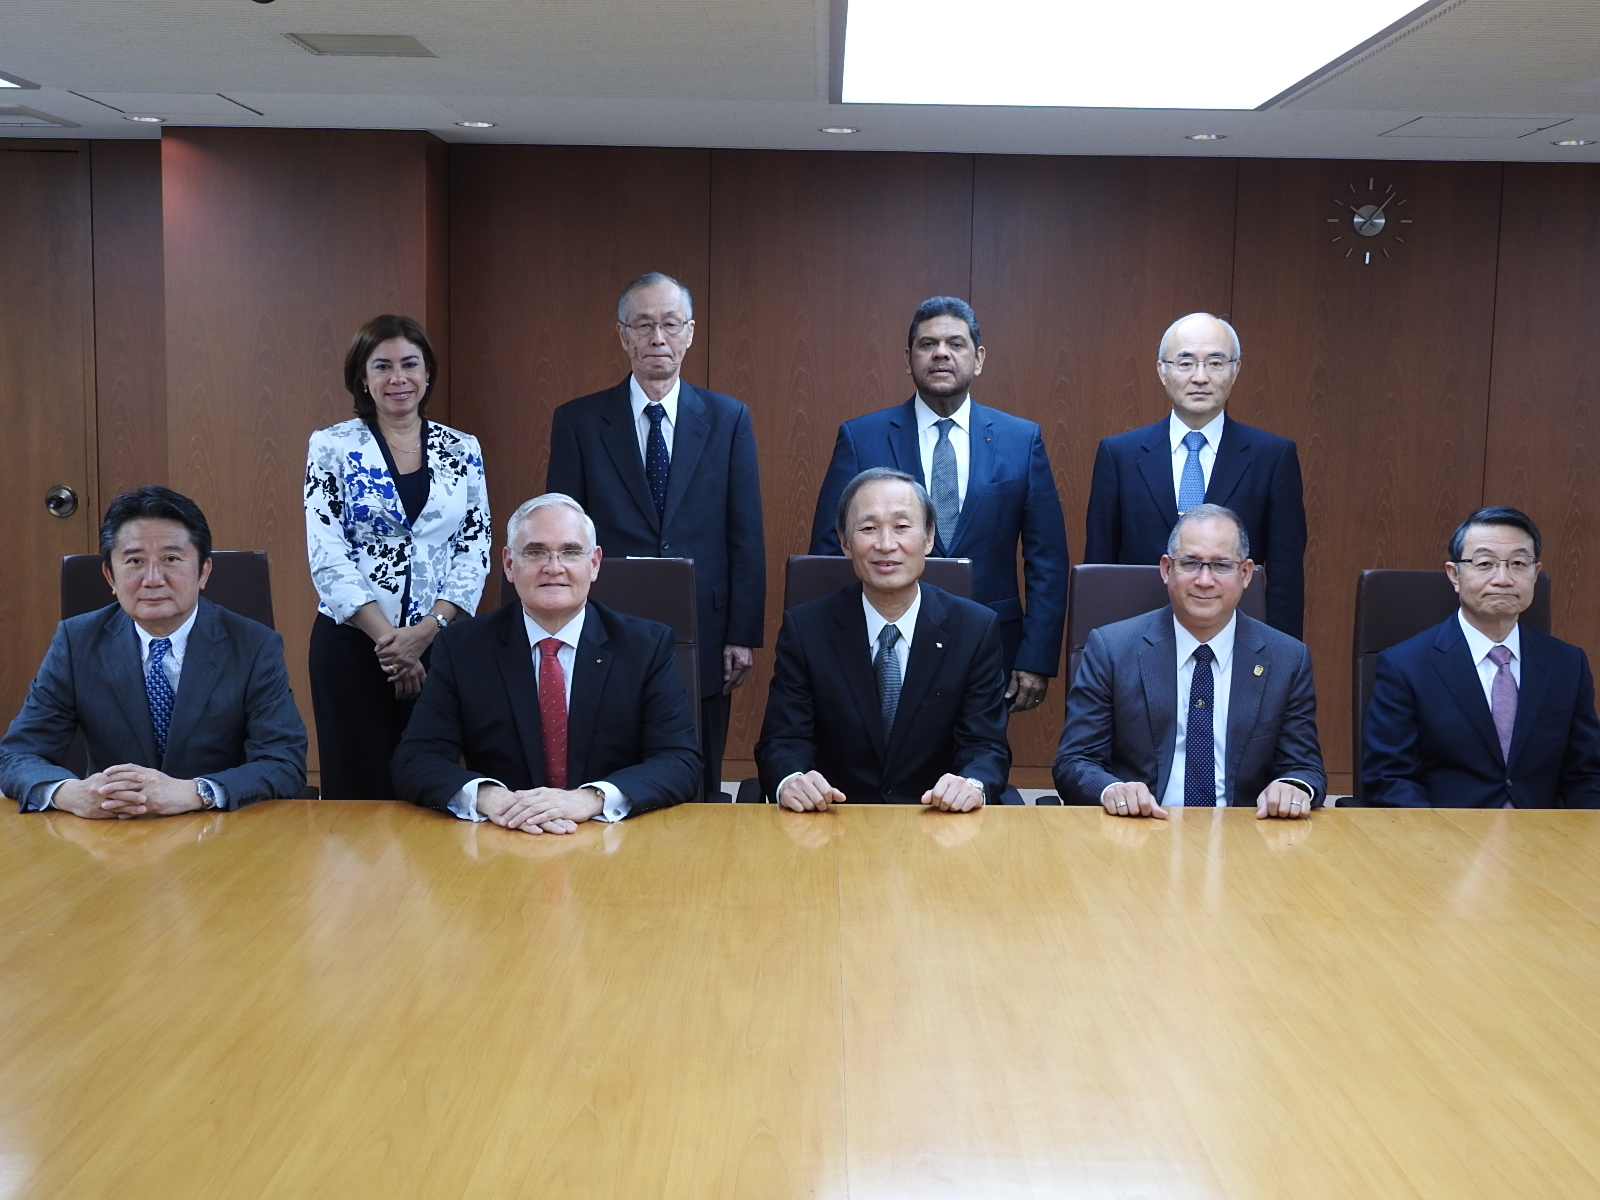 Meeting with the Japan Shipowners Association (JSA)